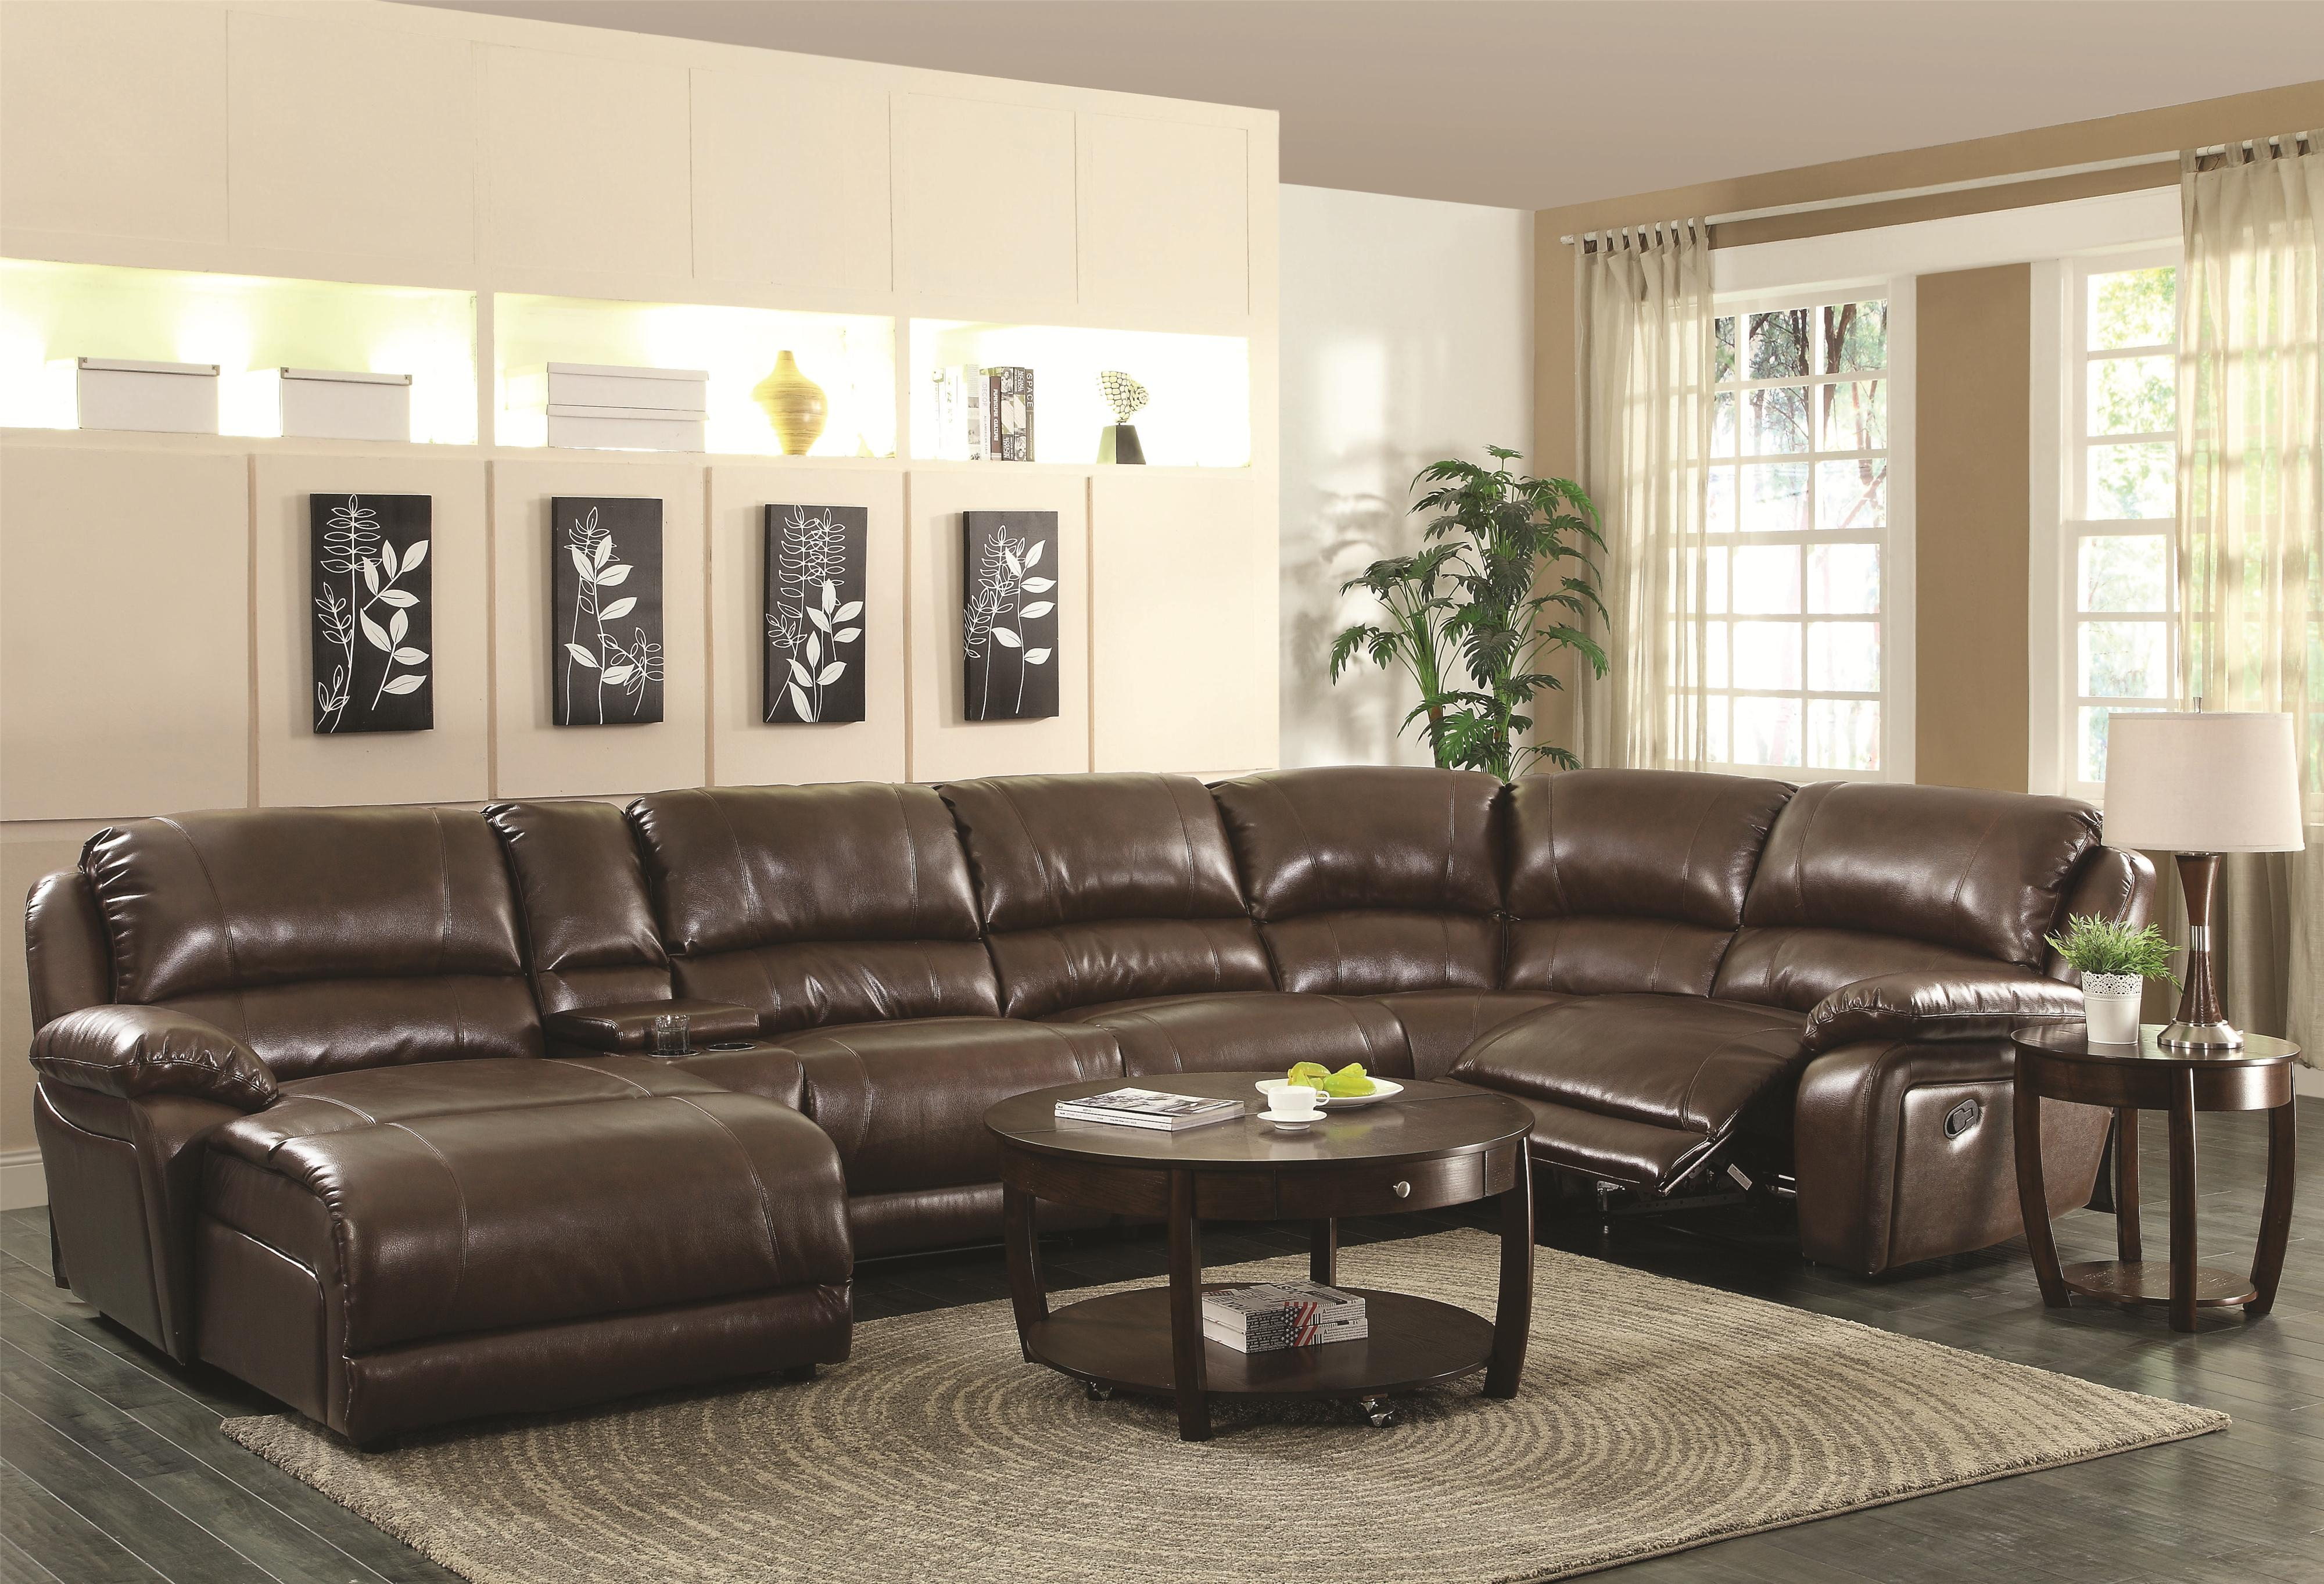 Coaster Mackenzie Chestnut 6 Piece Reclining Sectional Sofa With in 6 Piece Living Room Set